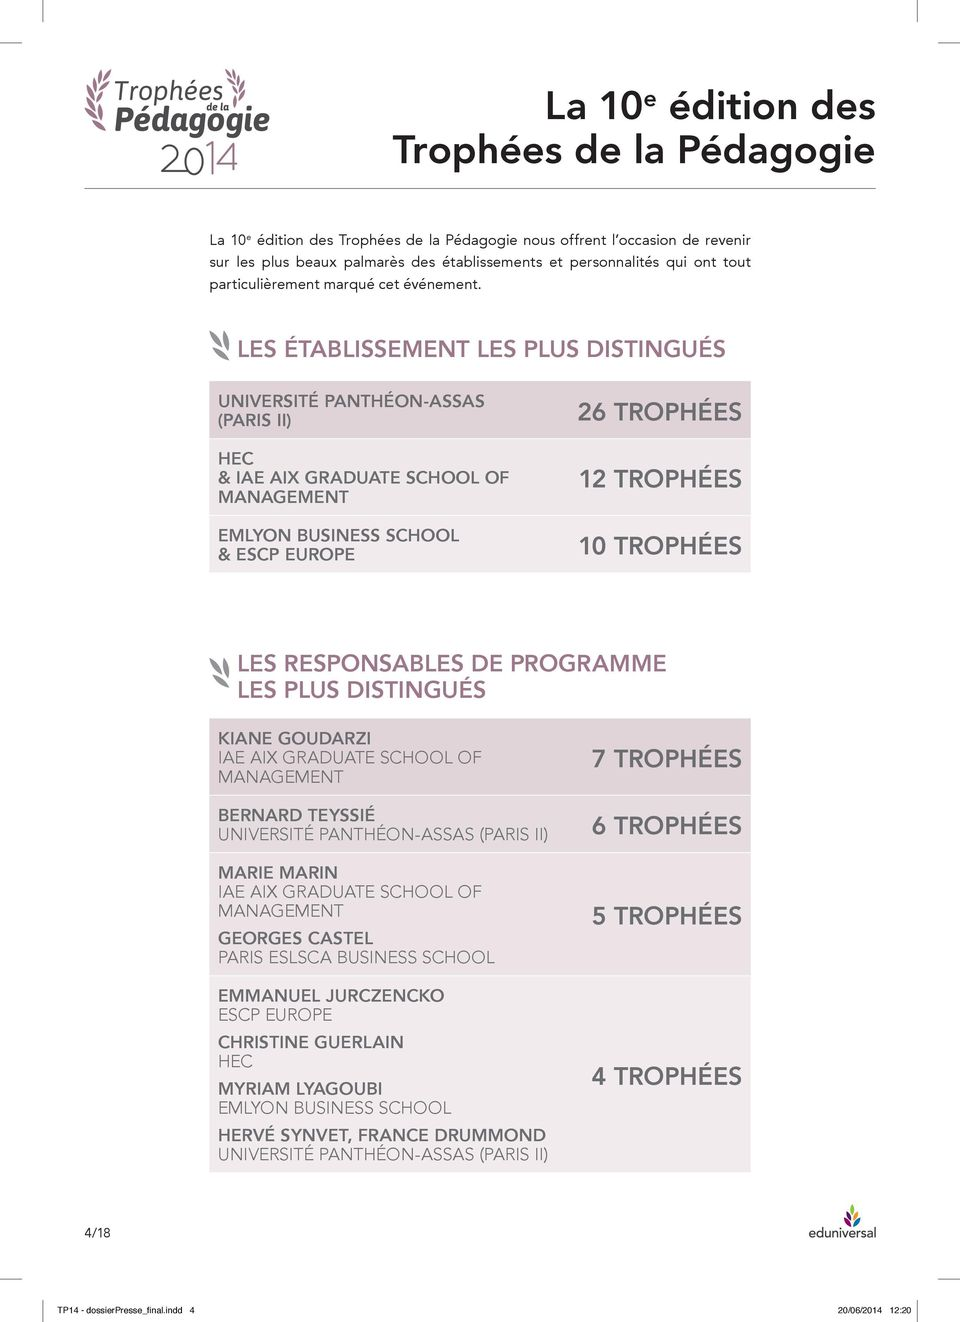 LES ÉTABLISSEMENT LES PLUS DISTINGUÉS UNIVERSITÉ PANTHÉON-ASSAS (PARIS II) HEC & IAE AIX GRADUATE SCHOOL OF MANAGEMENT EMLYON BUSINESS SCHOOL & ESCP EUROPE 26 TROPHÉES 12 TROPHÉES 10 TROPHÉES LES